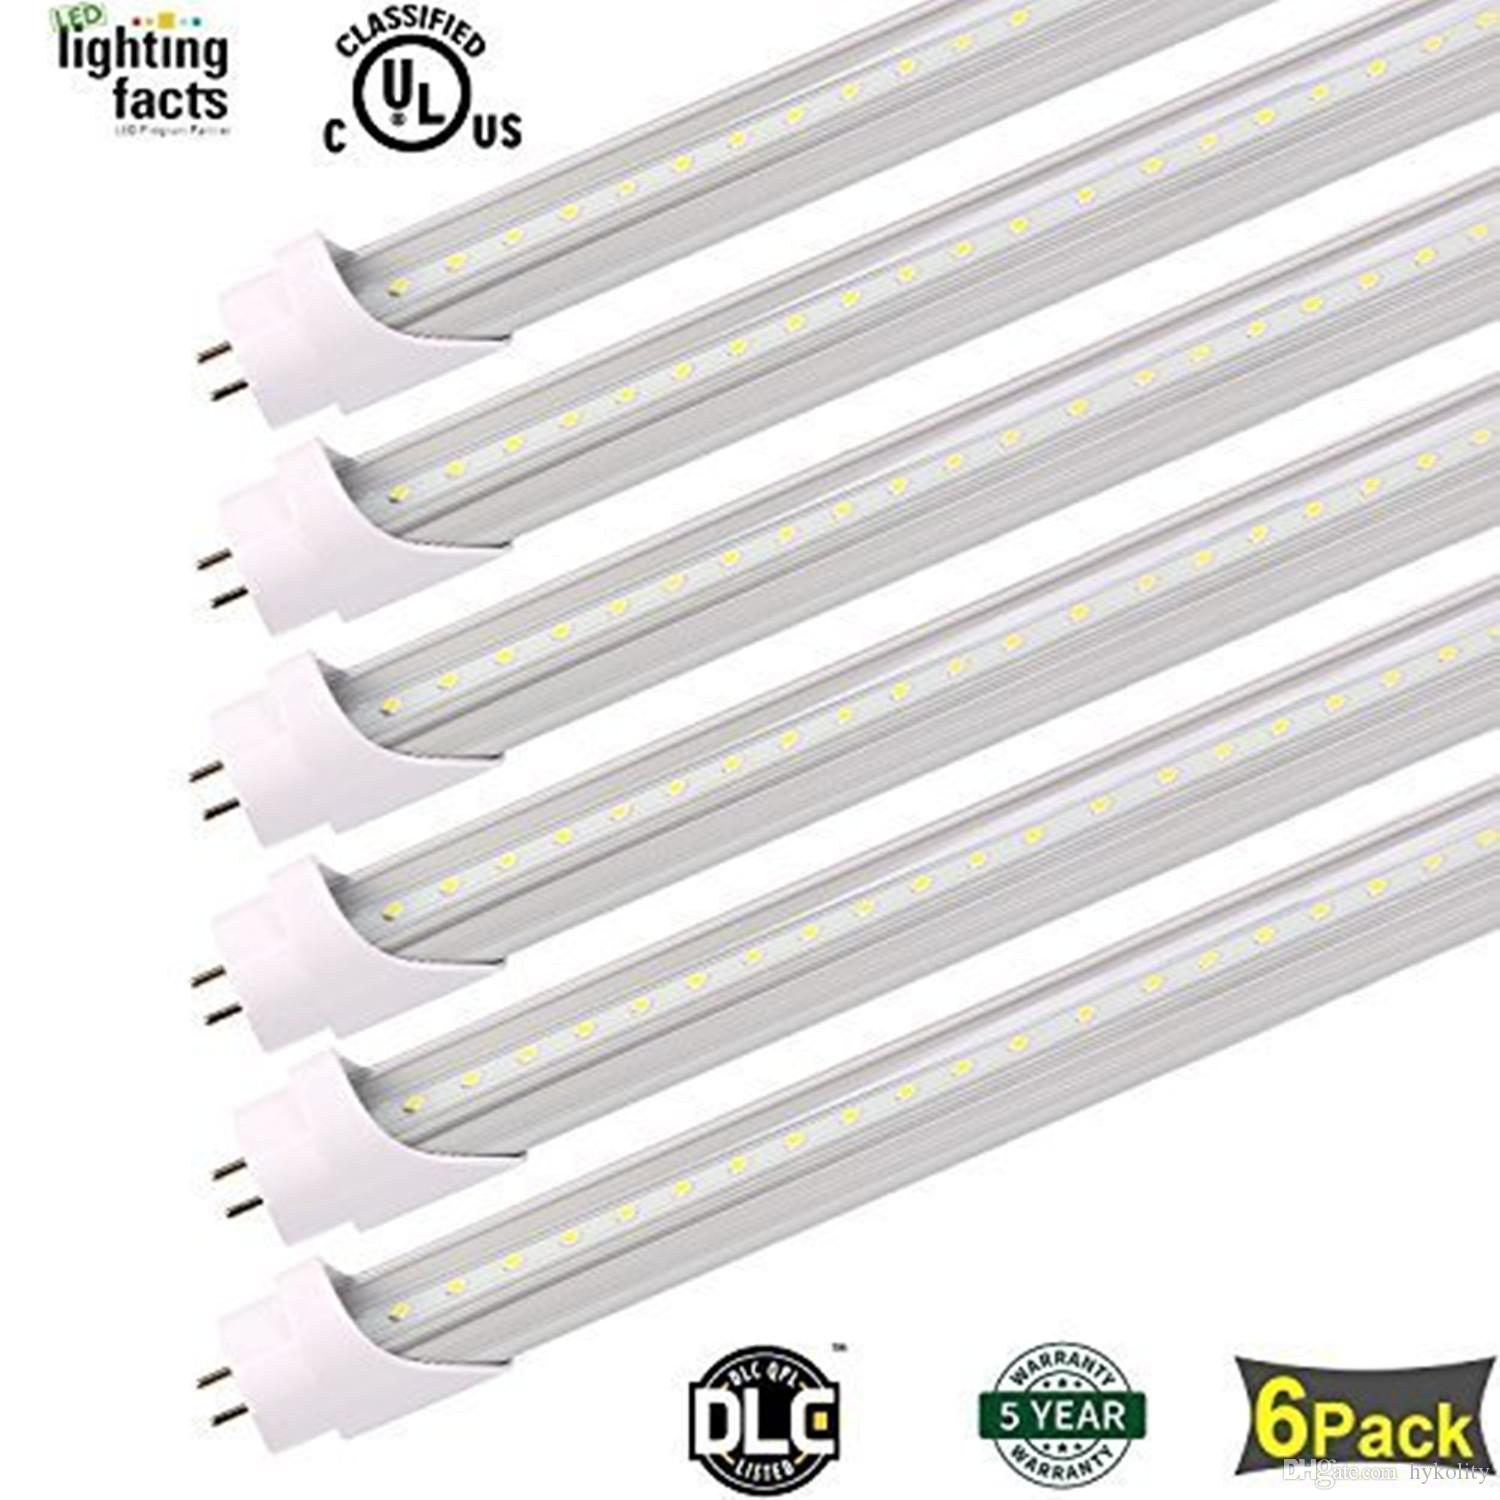 https://www.dhresource.com/0x0s/f2-albu-g5-M00-7F-91-rBVaJFg5H5eAcLw3AATjwhu2DeM271.jpg/hykolity-4ft-t8-led-tube-light-18w-crystal.jpg